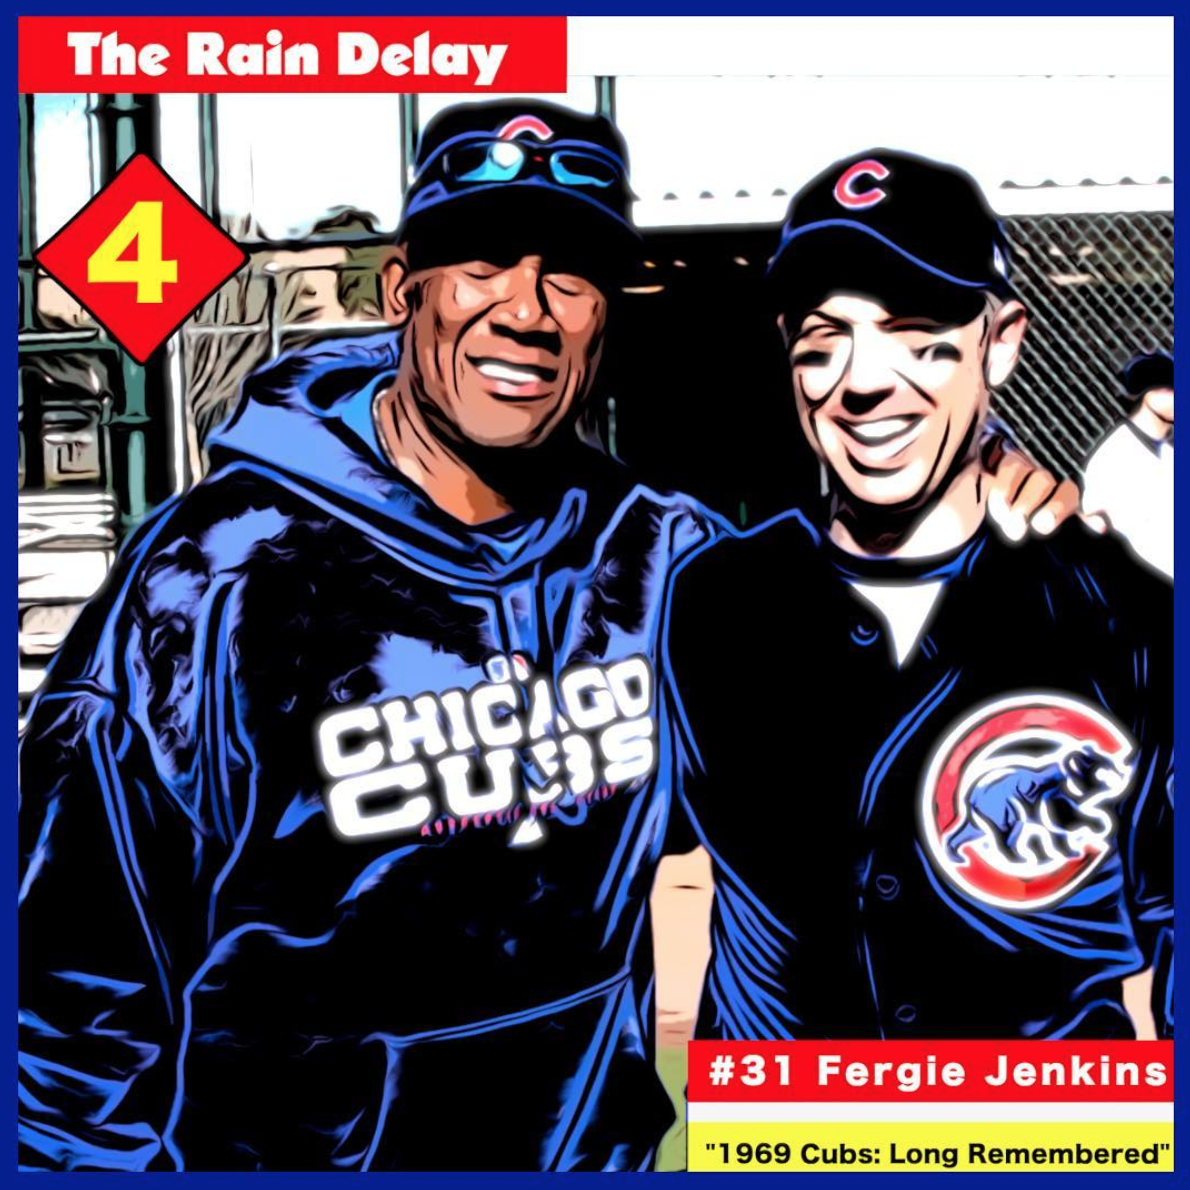 HALL OF FAMER FERGIE JENKINS